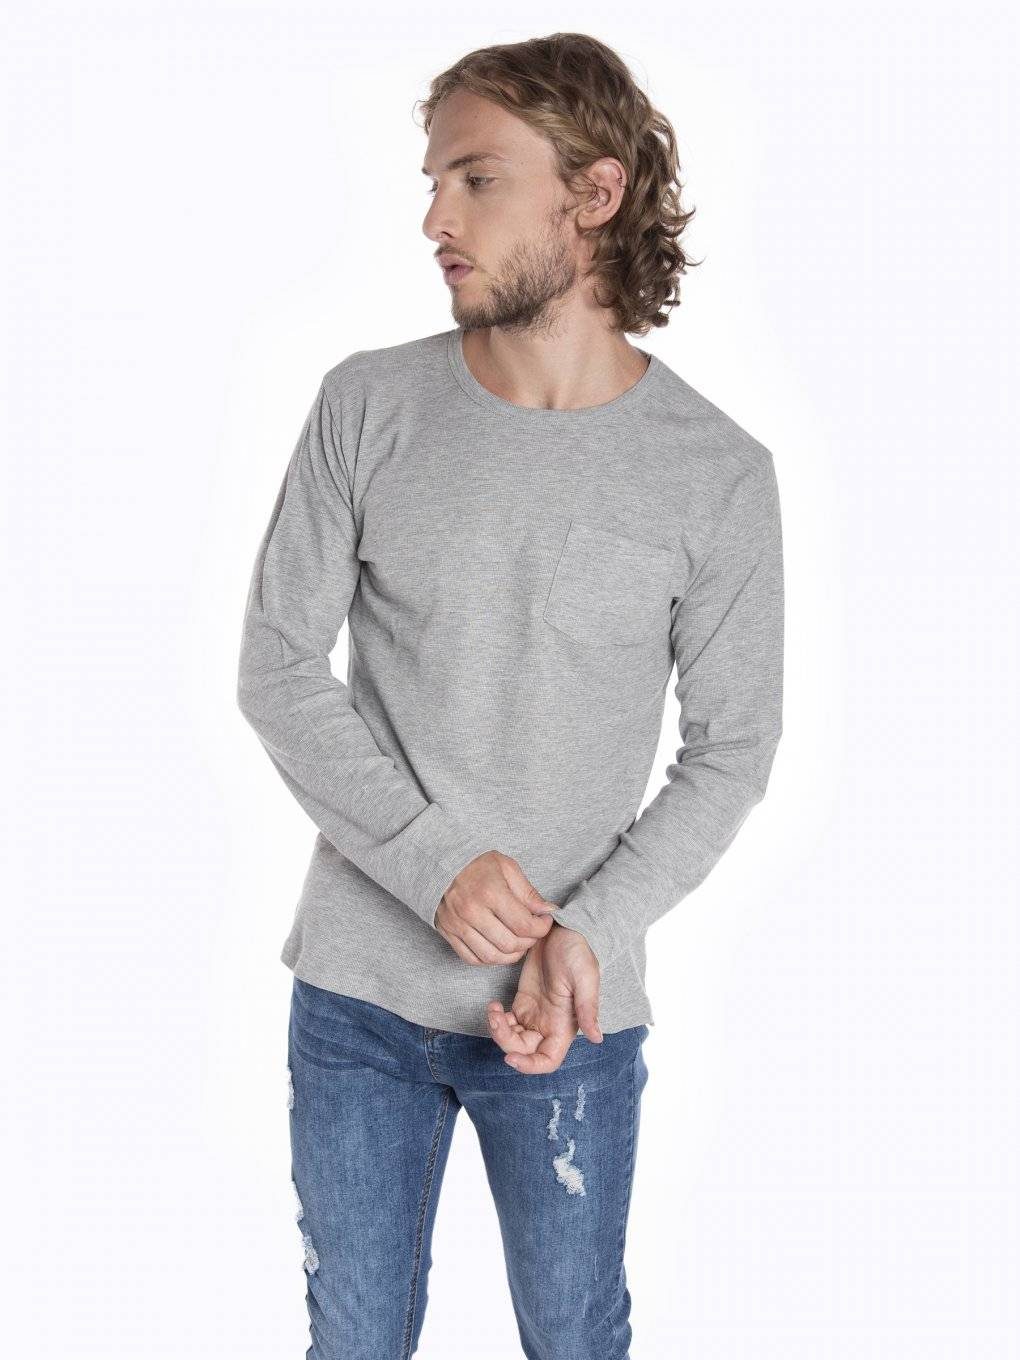 Waffle-knit long sleeve t-shirt with chest pocket